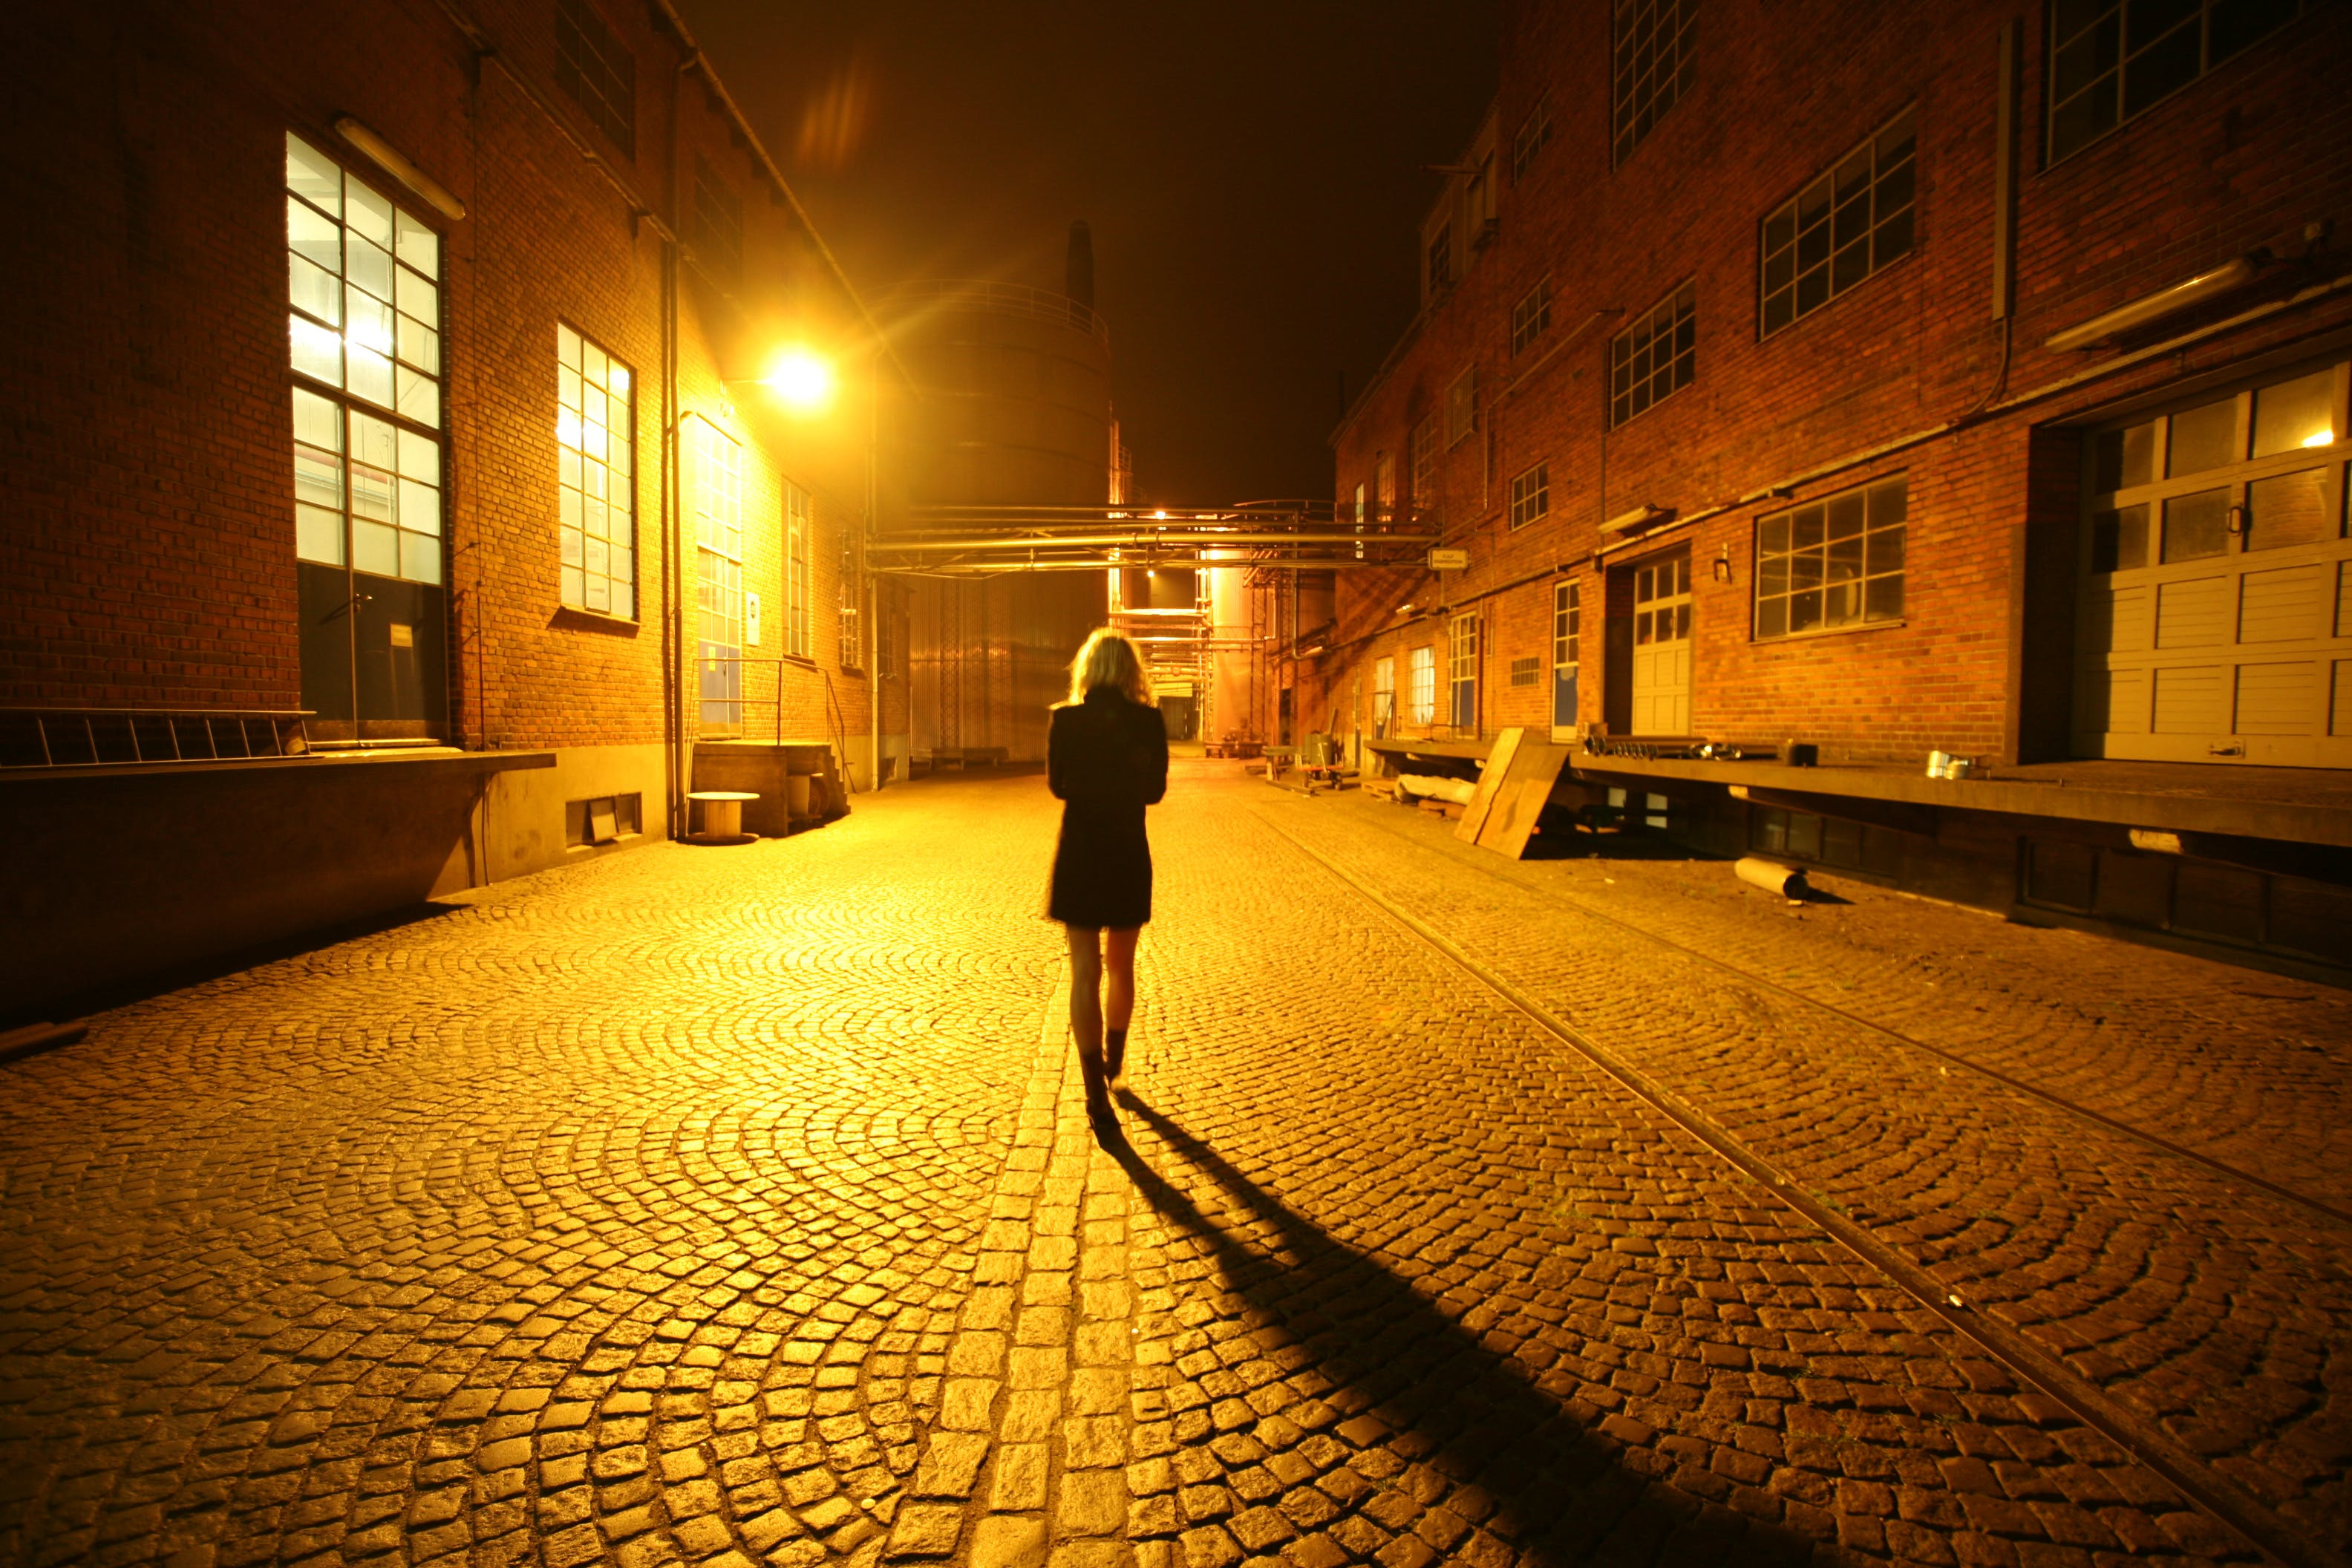 Woman Walking on Street at Night